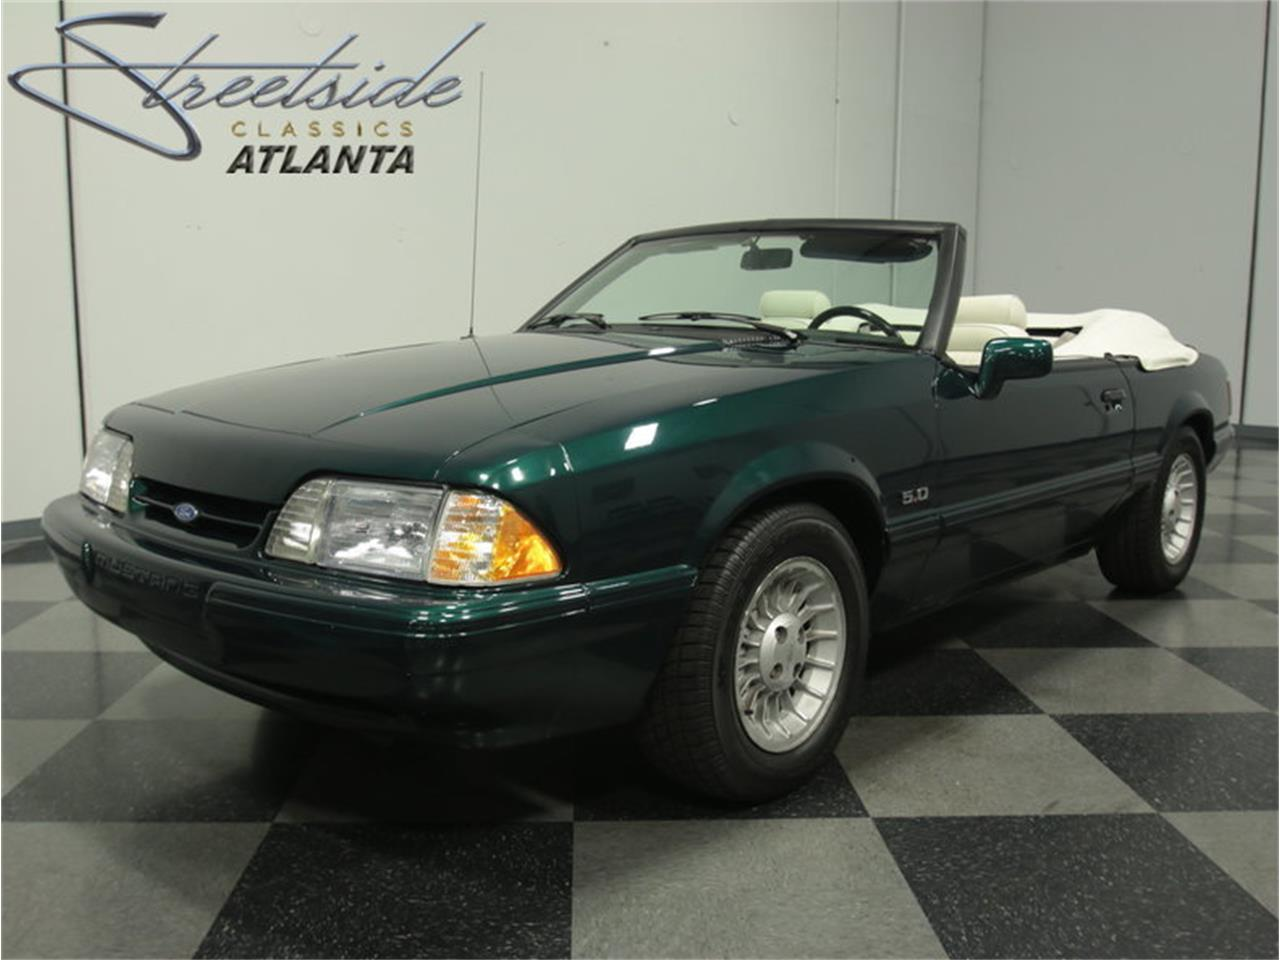 1990 Ford Mustang Lx 7 Up Edition For Sale Classiccars Com Cc 875818